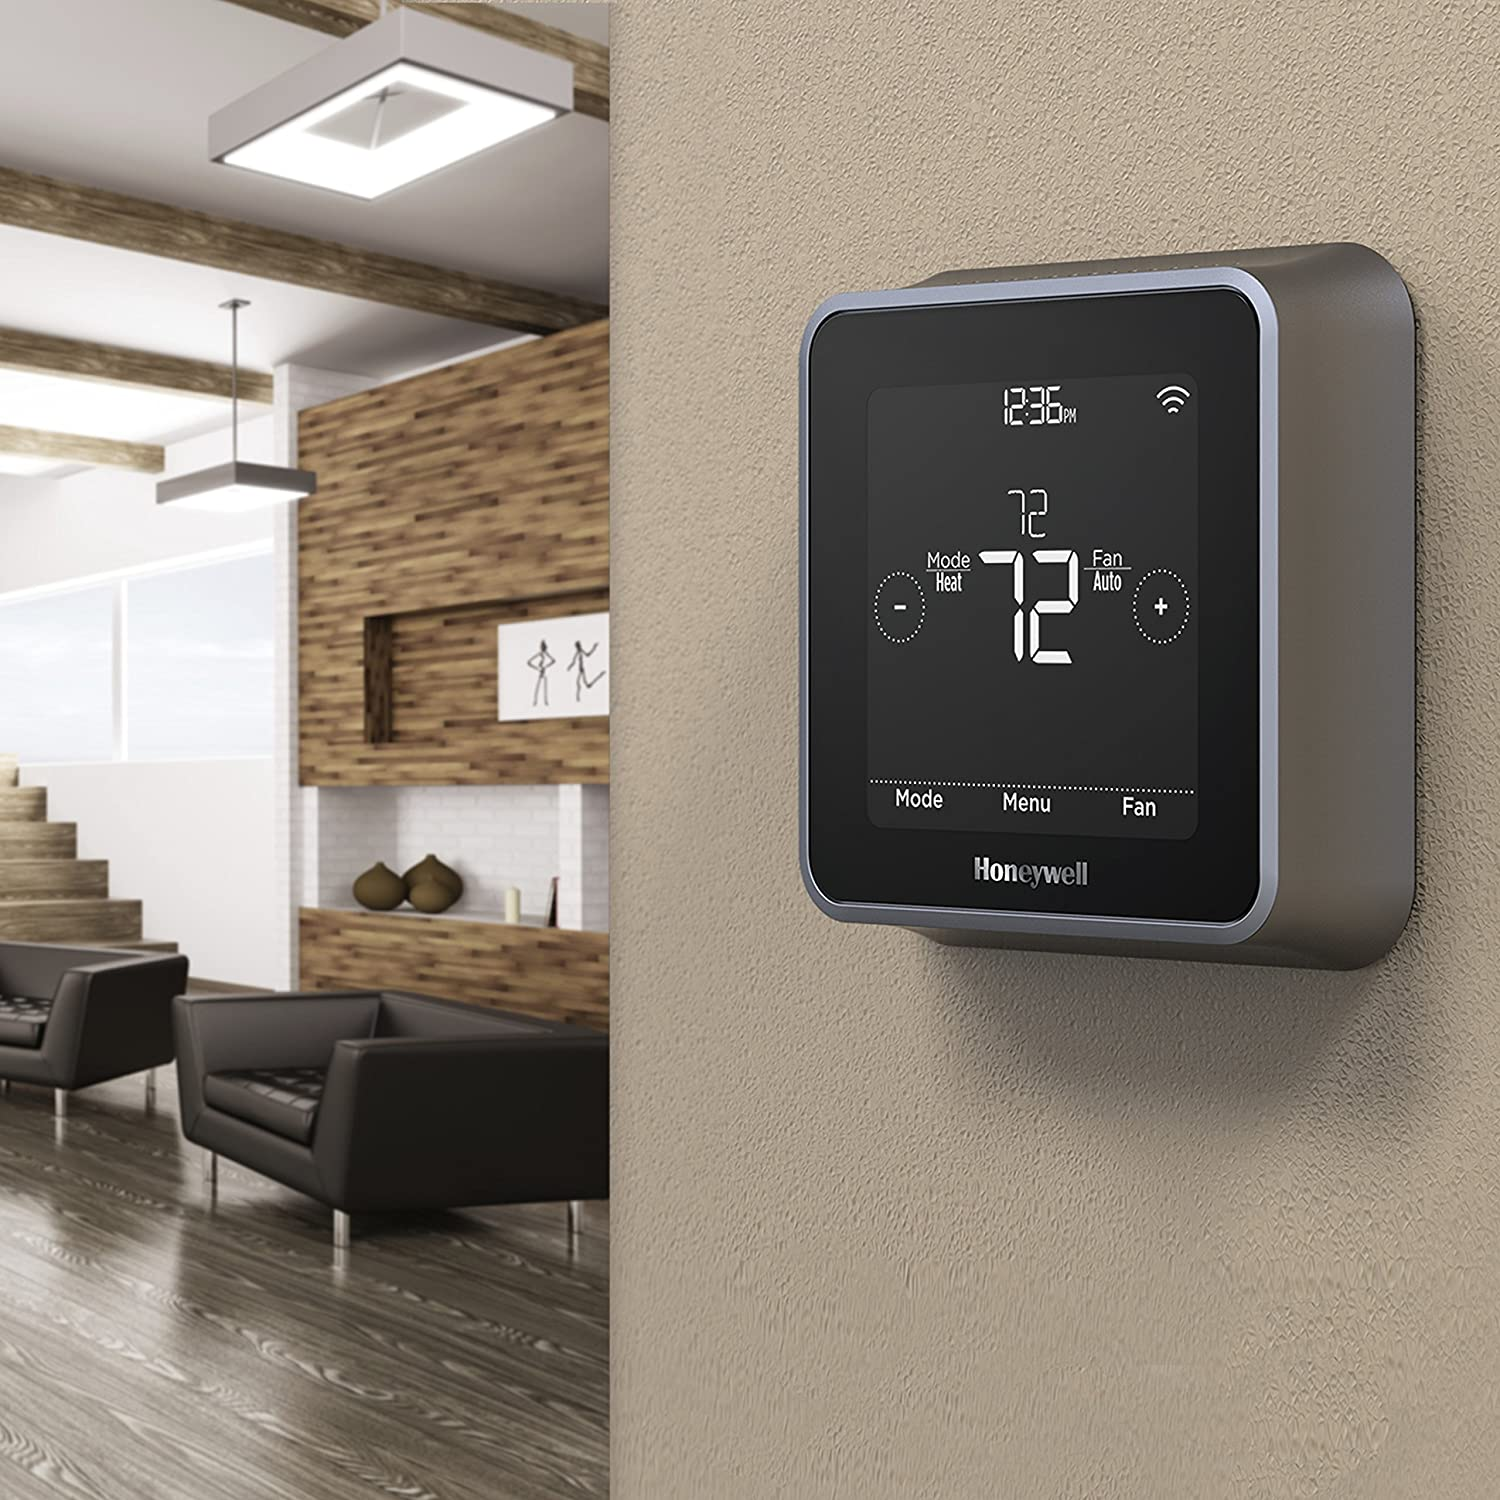 honeywell rcht8610wf2006 lyric t5 wi fi smart 7 day programmable honeywell rcht8610wf2006 lyric t5 wi fi smart 7 day programmable touchscreen thermostat with geofencing works with amazon alexa amazon com